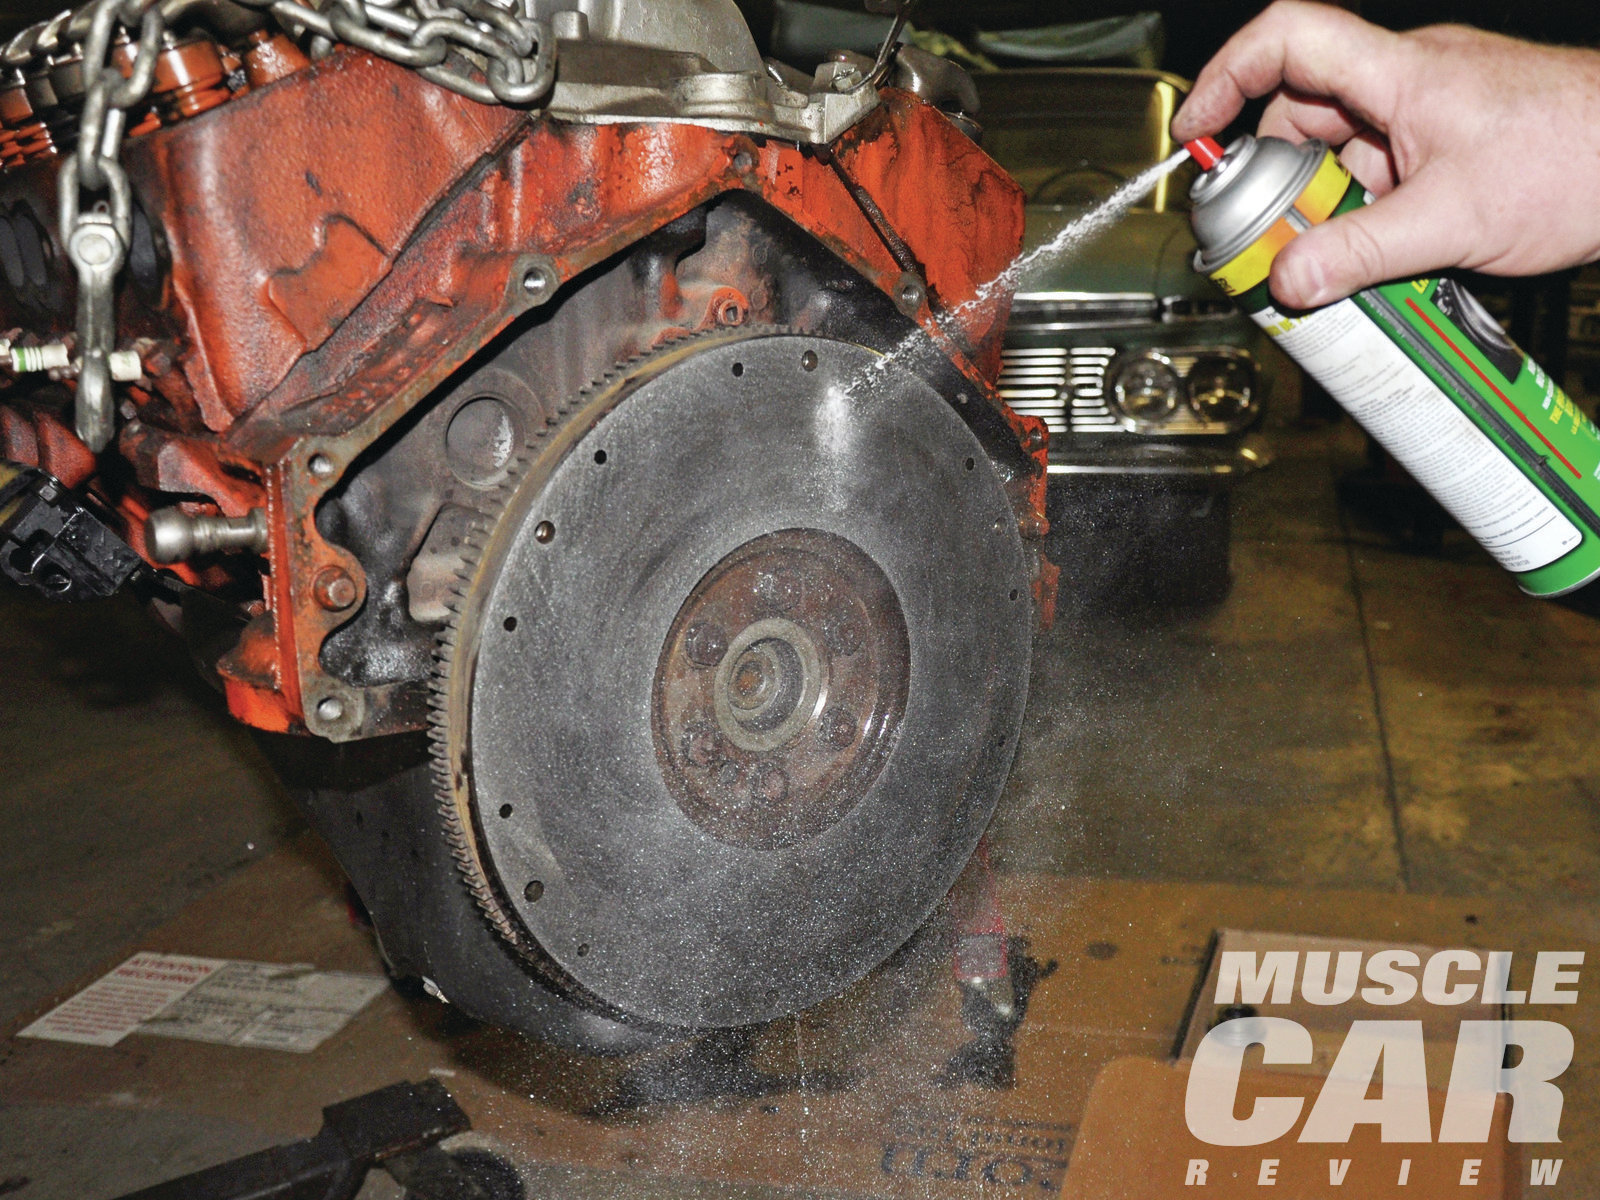 After the flywheel was properly torqued, a brake cleaner or similar product is applied to remove any grease and fingerprints left there from handling.